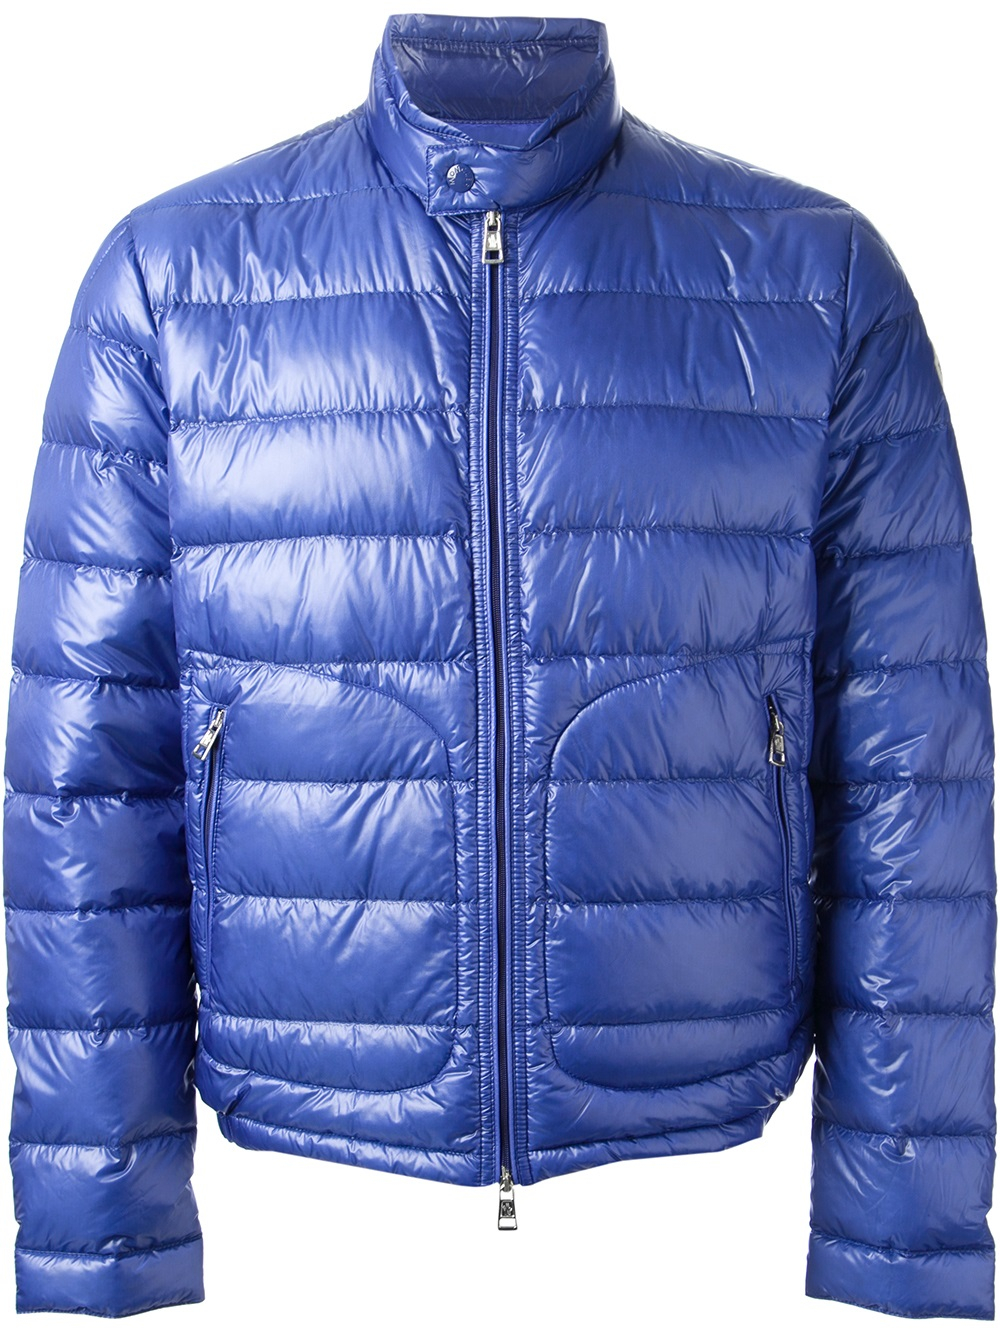 bed69d3a9 spain moncler daniel padded jacket blue paint 55245 e9a95